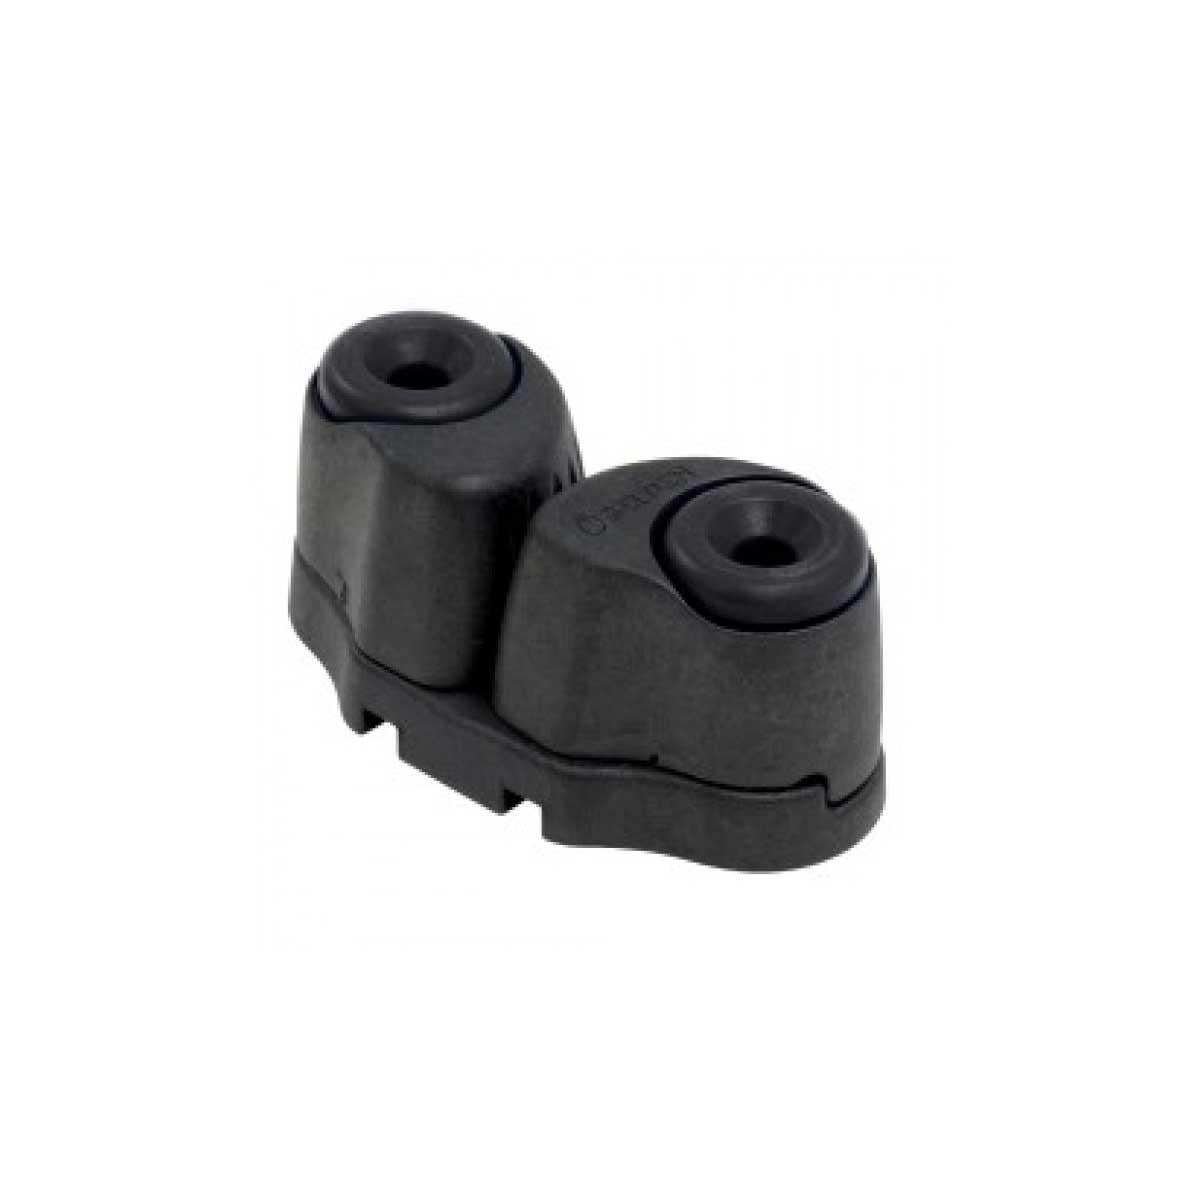 Selden 38mm Composite Cam Cleat